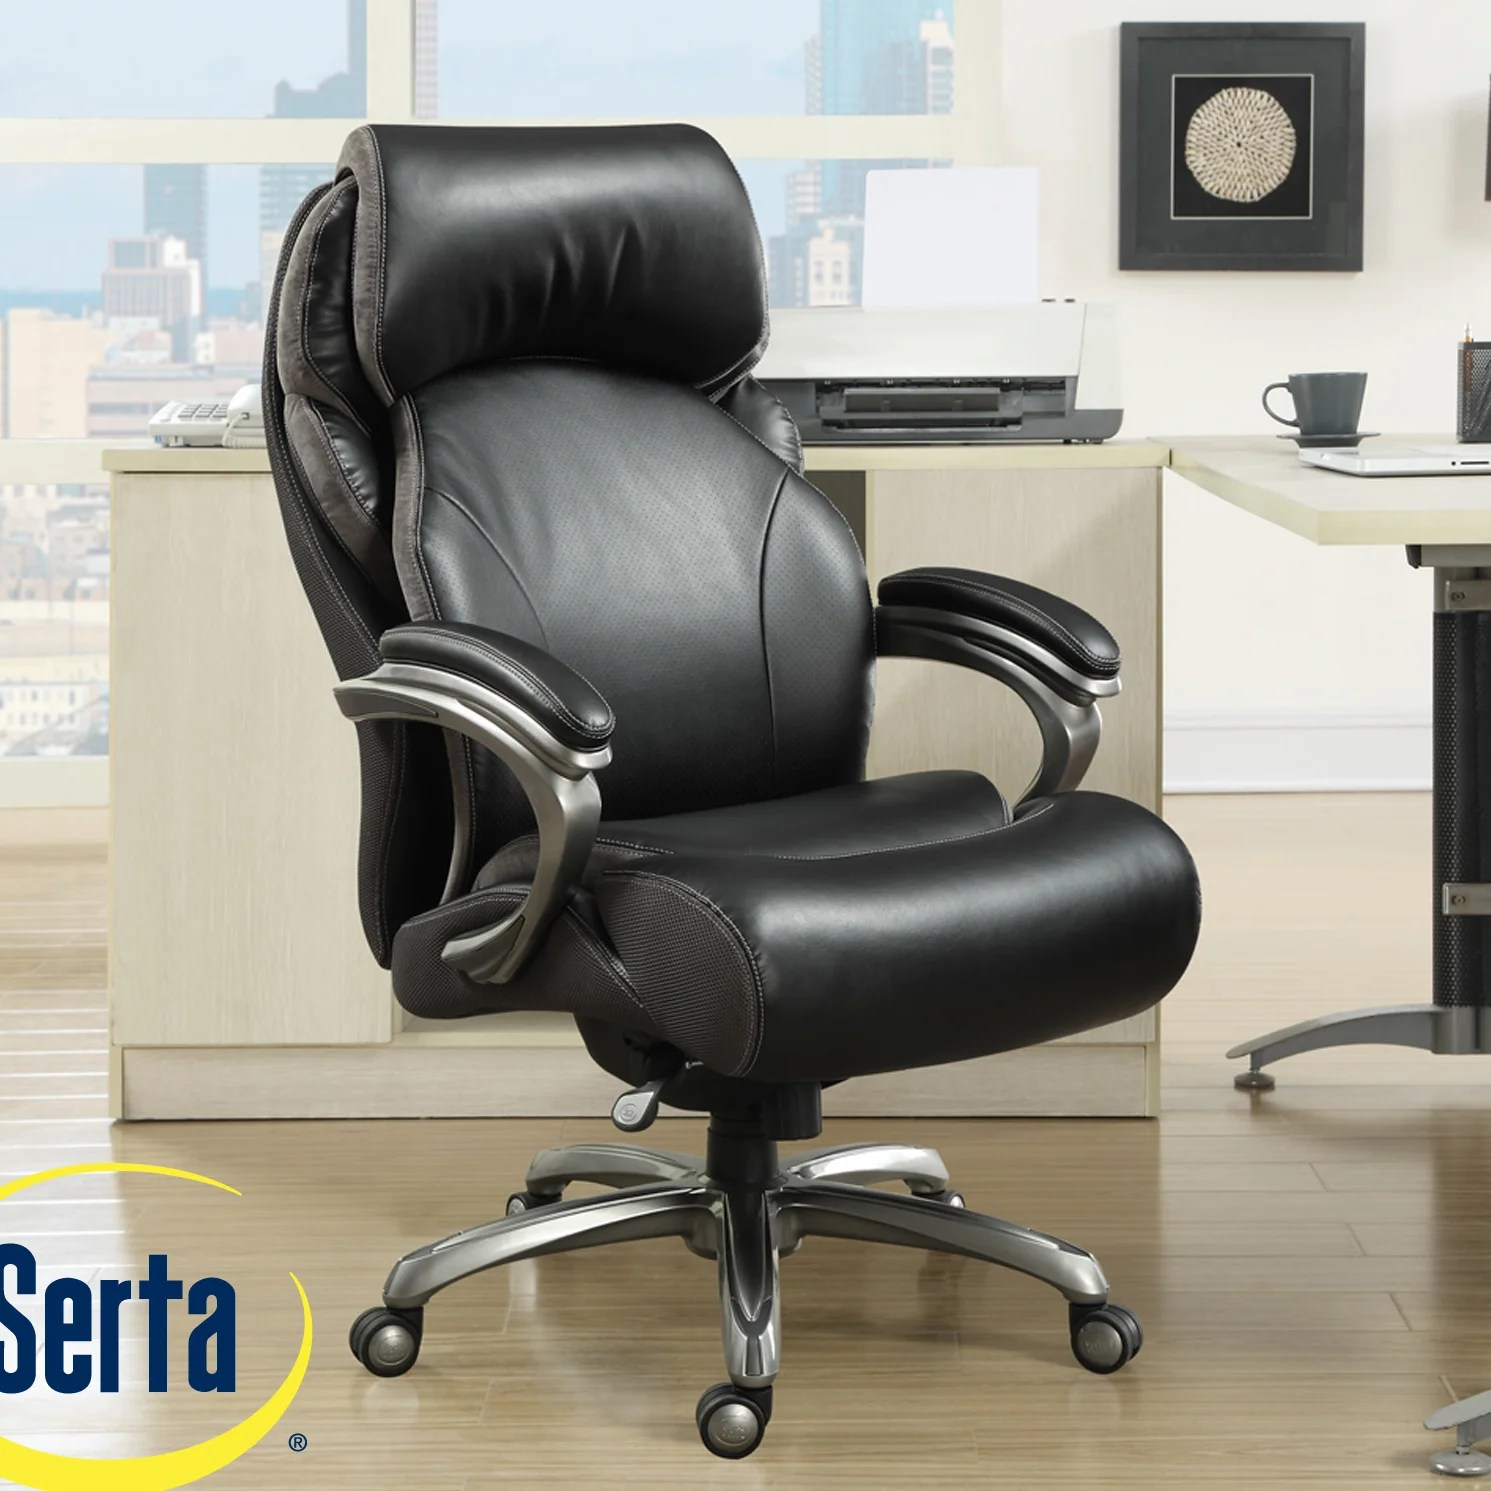 serta managers chair antique cane bottom rocking at home tranquility high back executive with